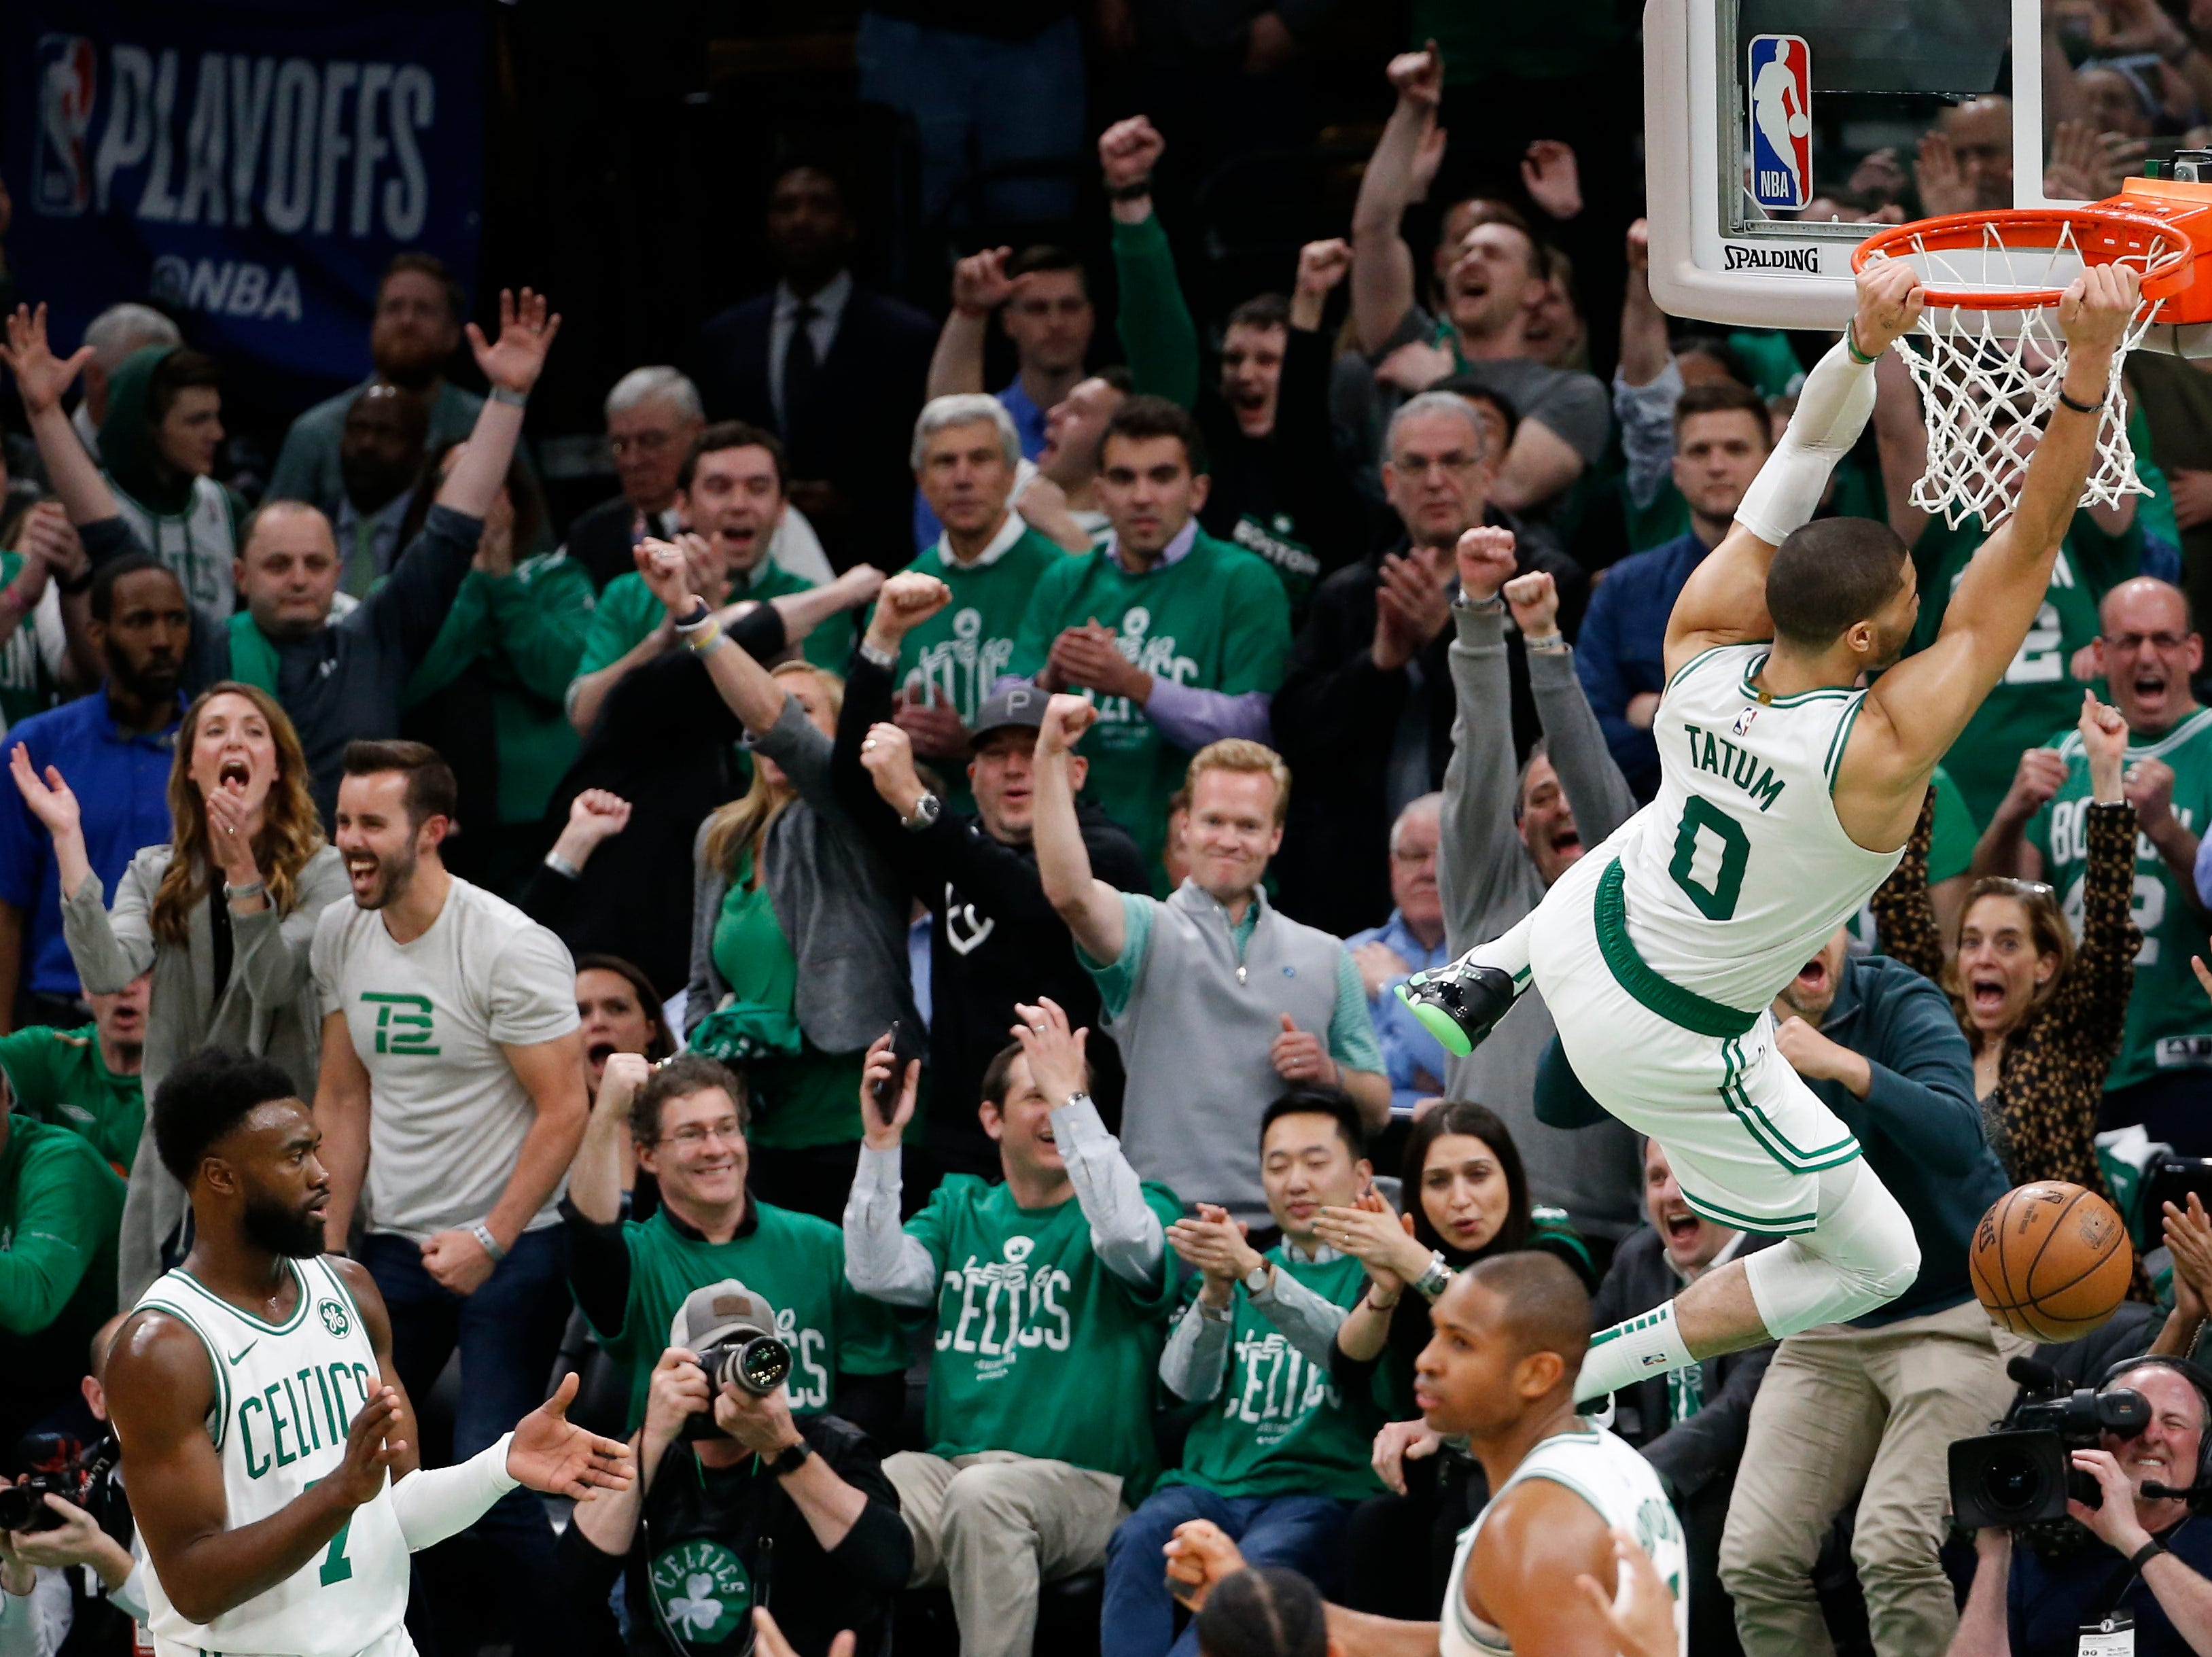 April 17: Celtics forward Jayson Tatum throws down a dunk during Game 2 against the Pacers. Tatum scored 26 points as Boston rallied for a 99-91 win.